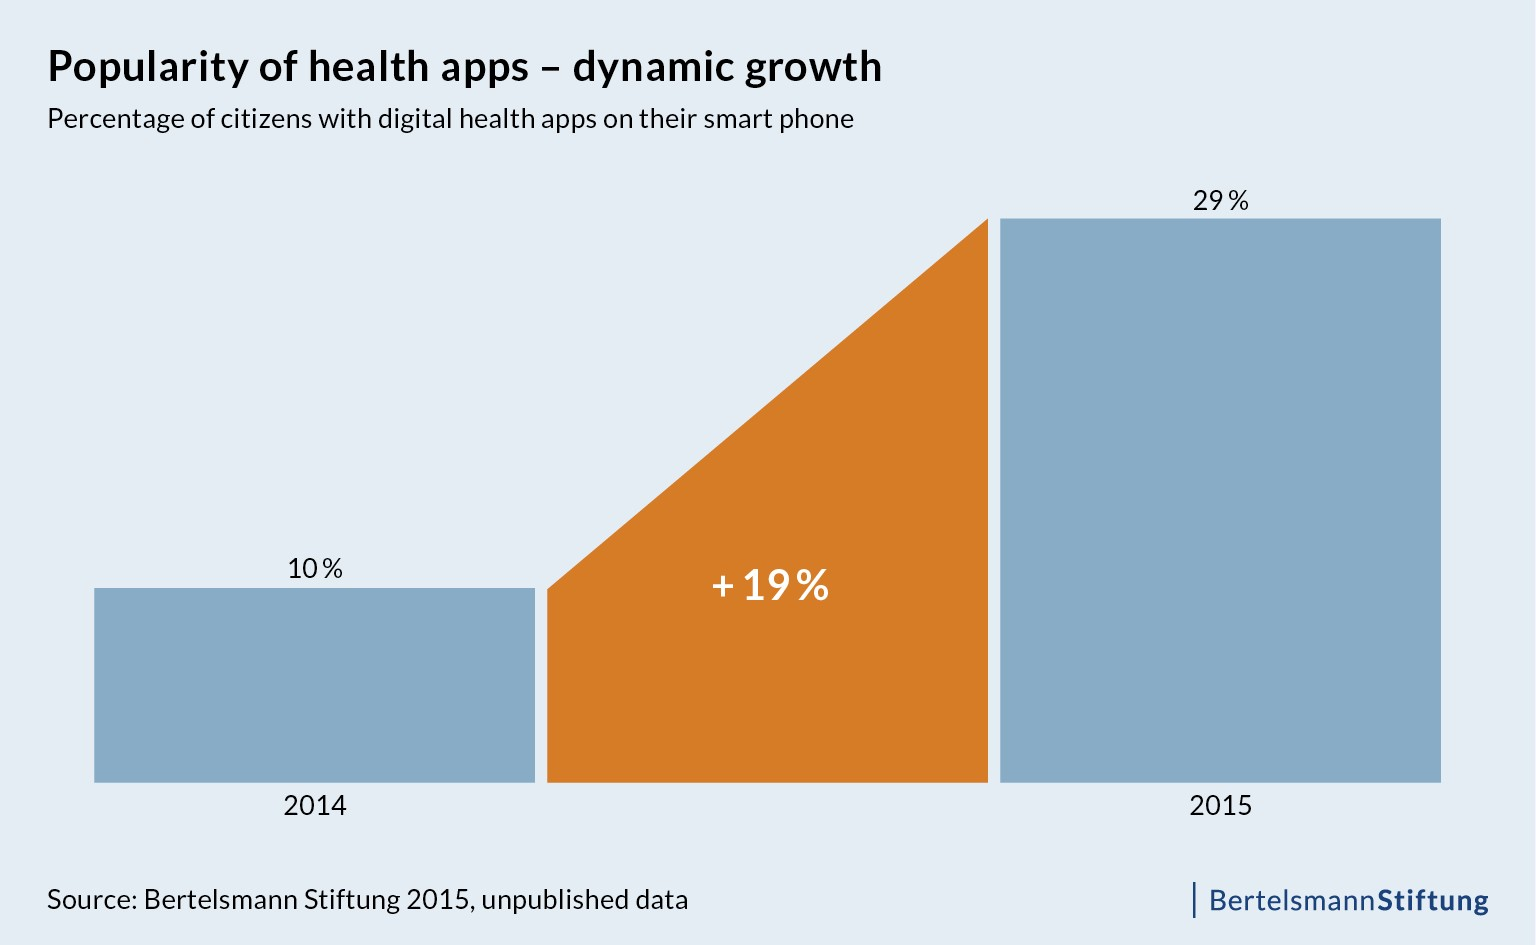 Popularity of health apps - dynamic growth